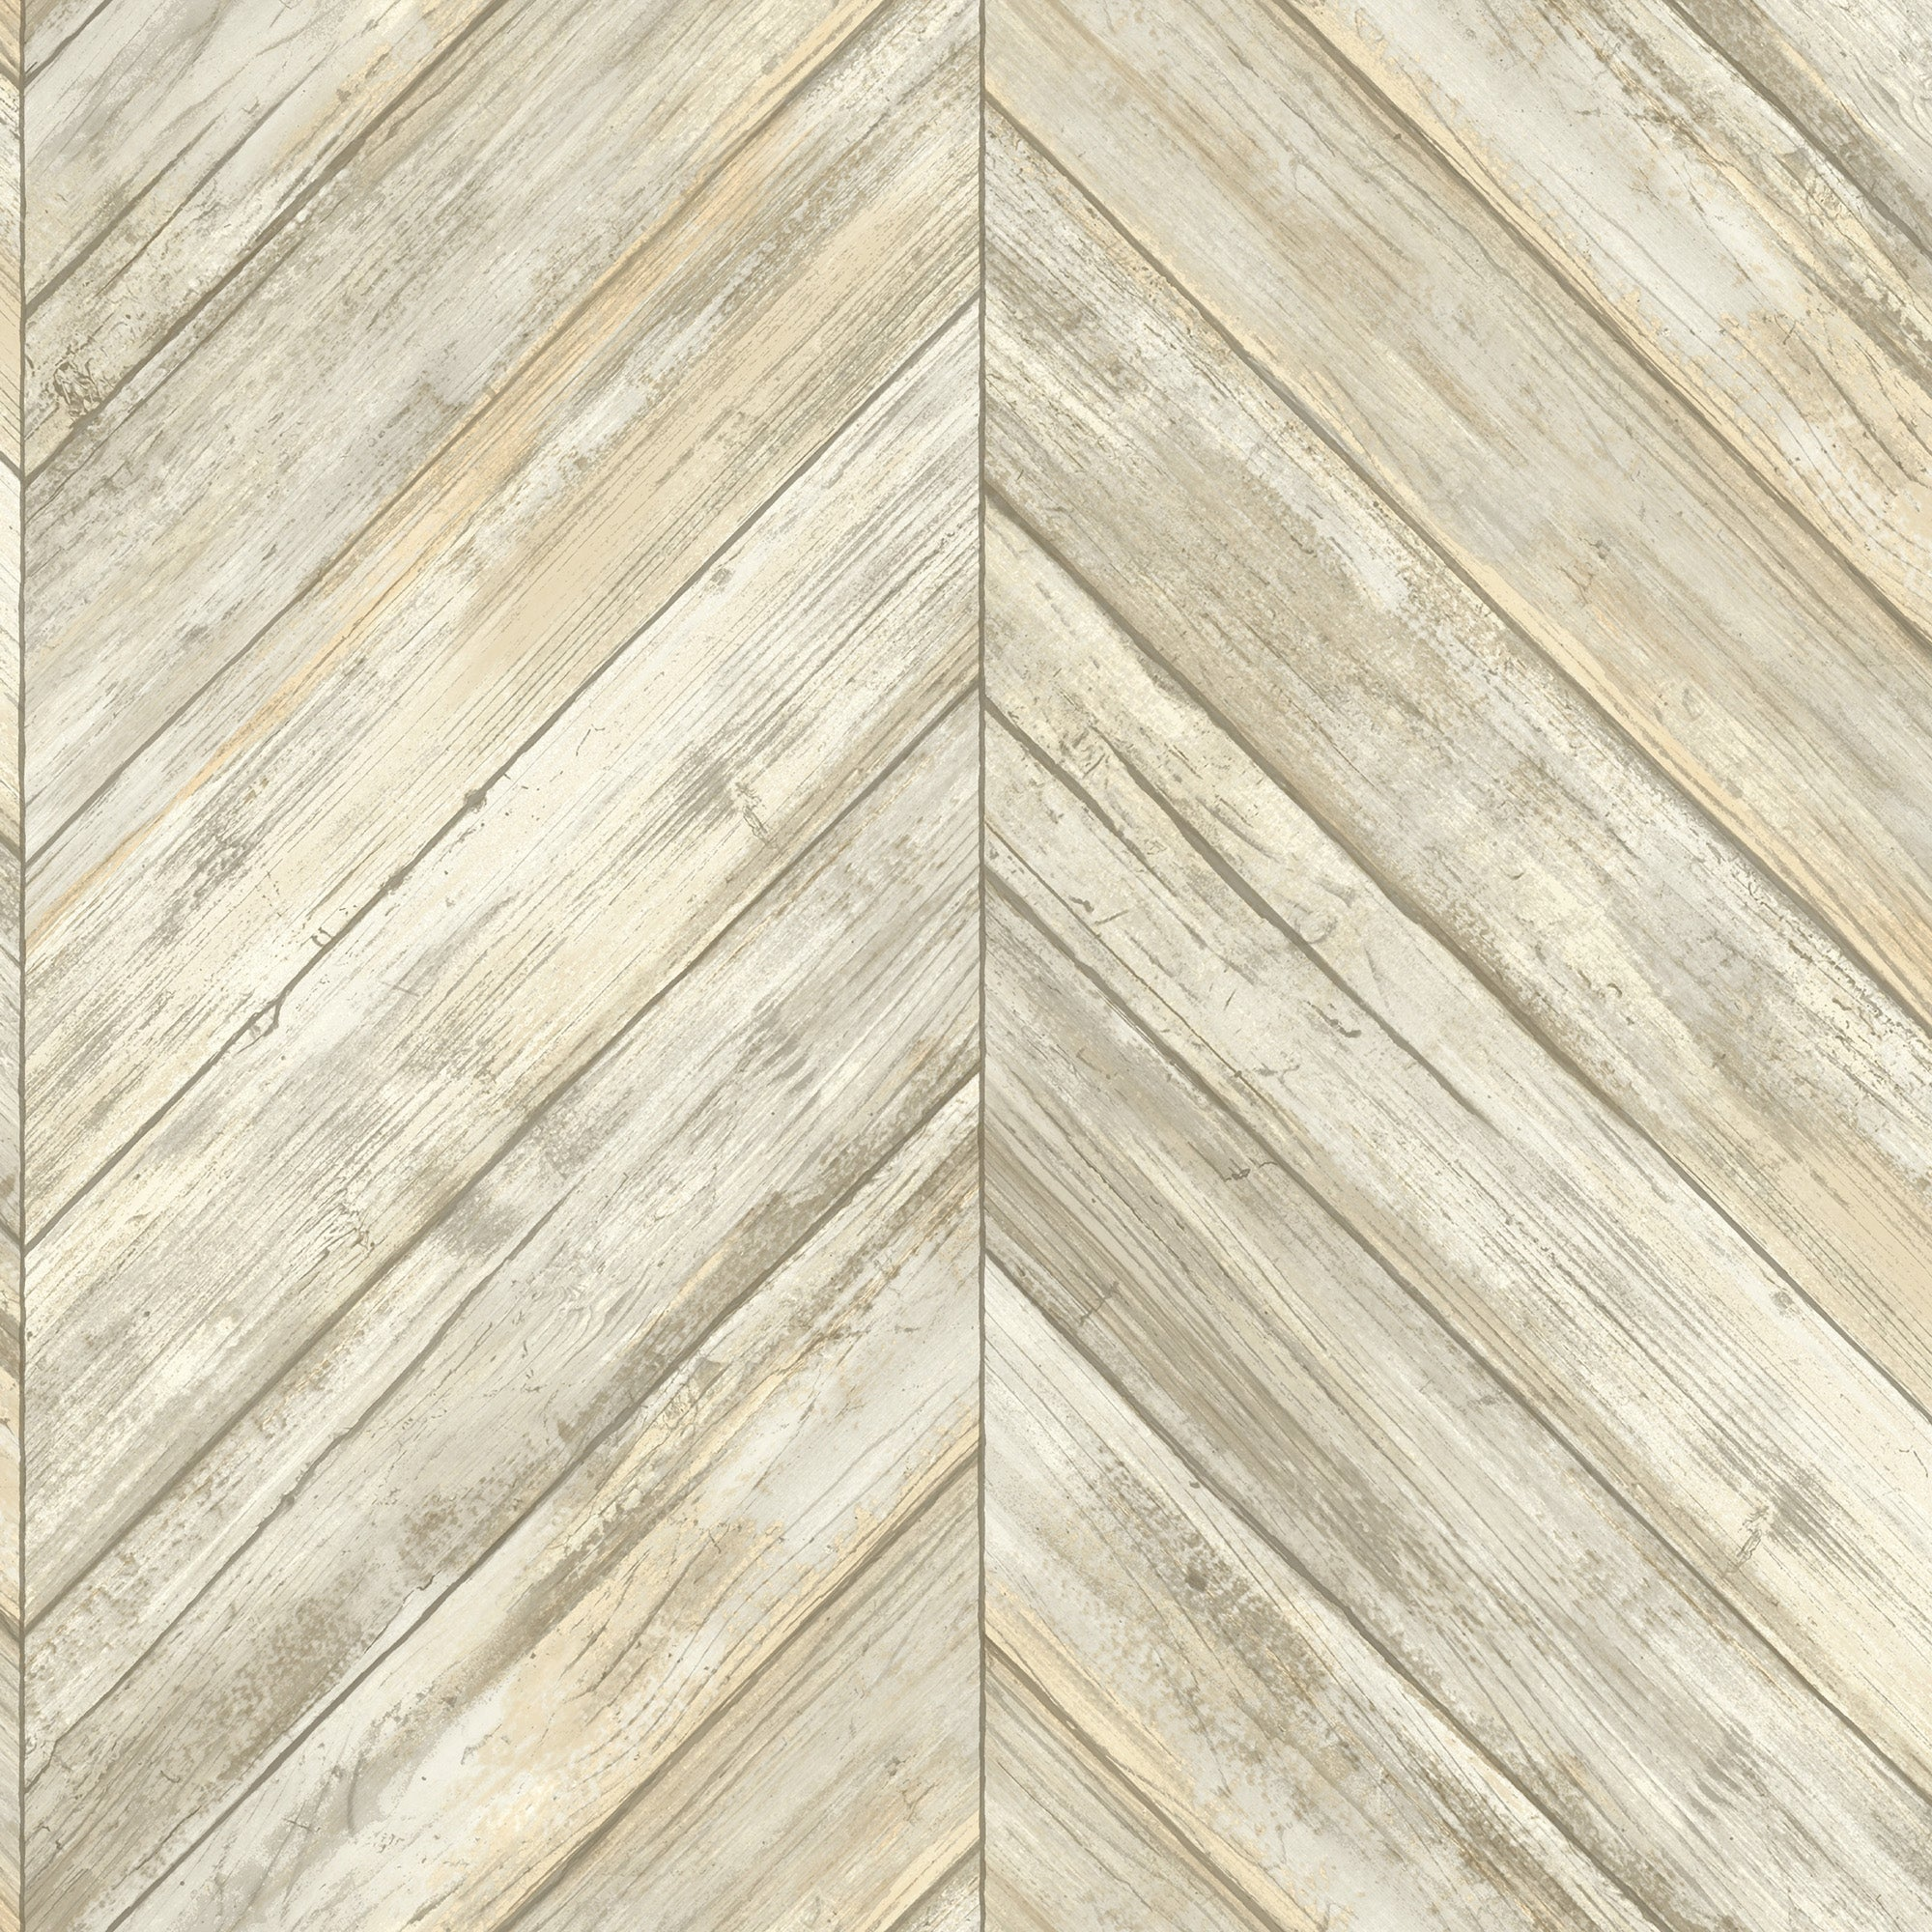 Herringbone Wood Boards Wallpaper - Beige